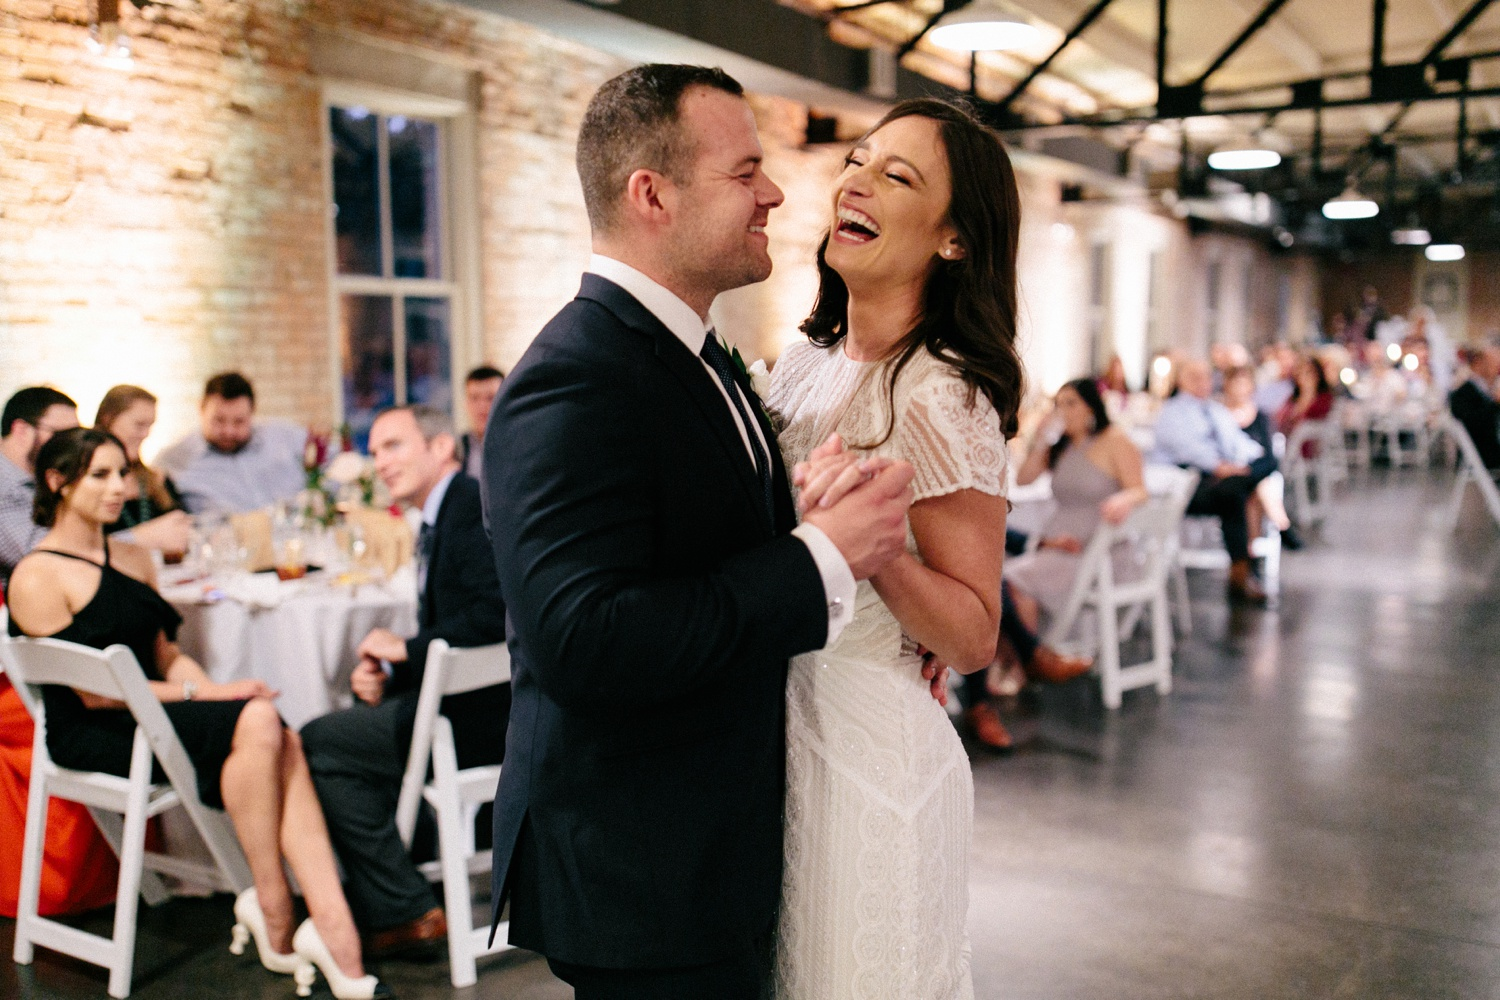 Kadee + Tyler | a raw, emotional wedding at the Filter Building on White Rock Lake in Dallas, TX by North Texas Wedding Photographer, Rachel Meagan Photography 200